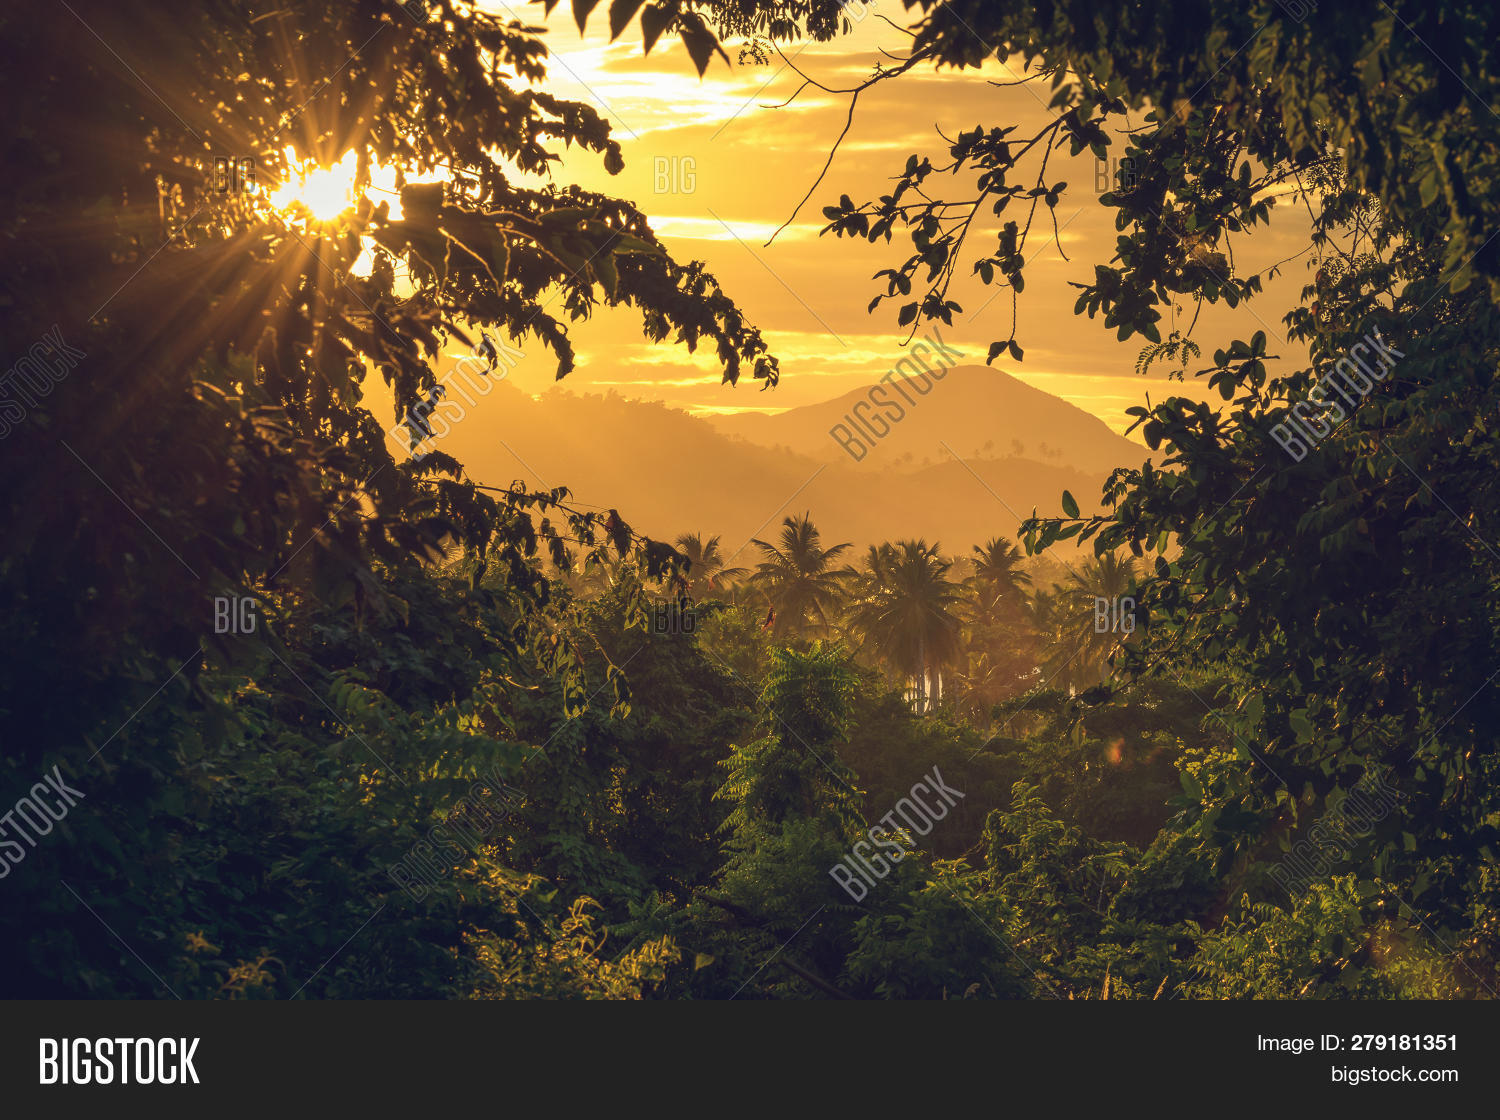 background,bright,climate,coconut,daylight,dominican,environment,flora,flow,foliage,forest,green,jungle,landscape,leaf,light,looking,lush,motion,mountain,natural,nature,outdoor,palm,path,peaceful,rainforest,republic,rock,rural,scenery,shine,stunning,sunset,tranquil,tranquility,travel,tree,tropical,tunnel,valley,vegetation,vibrant,view,vivid,walk,walkway,water,wild